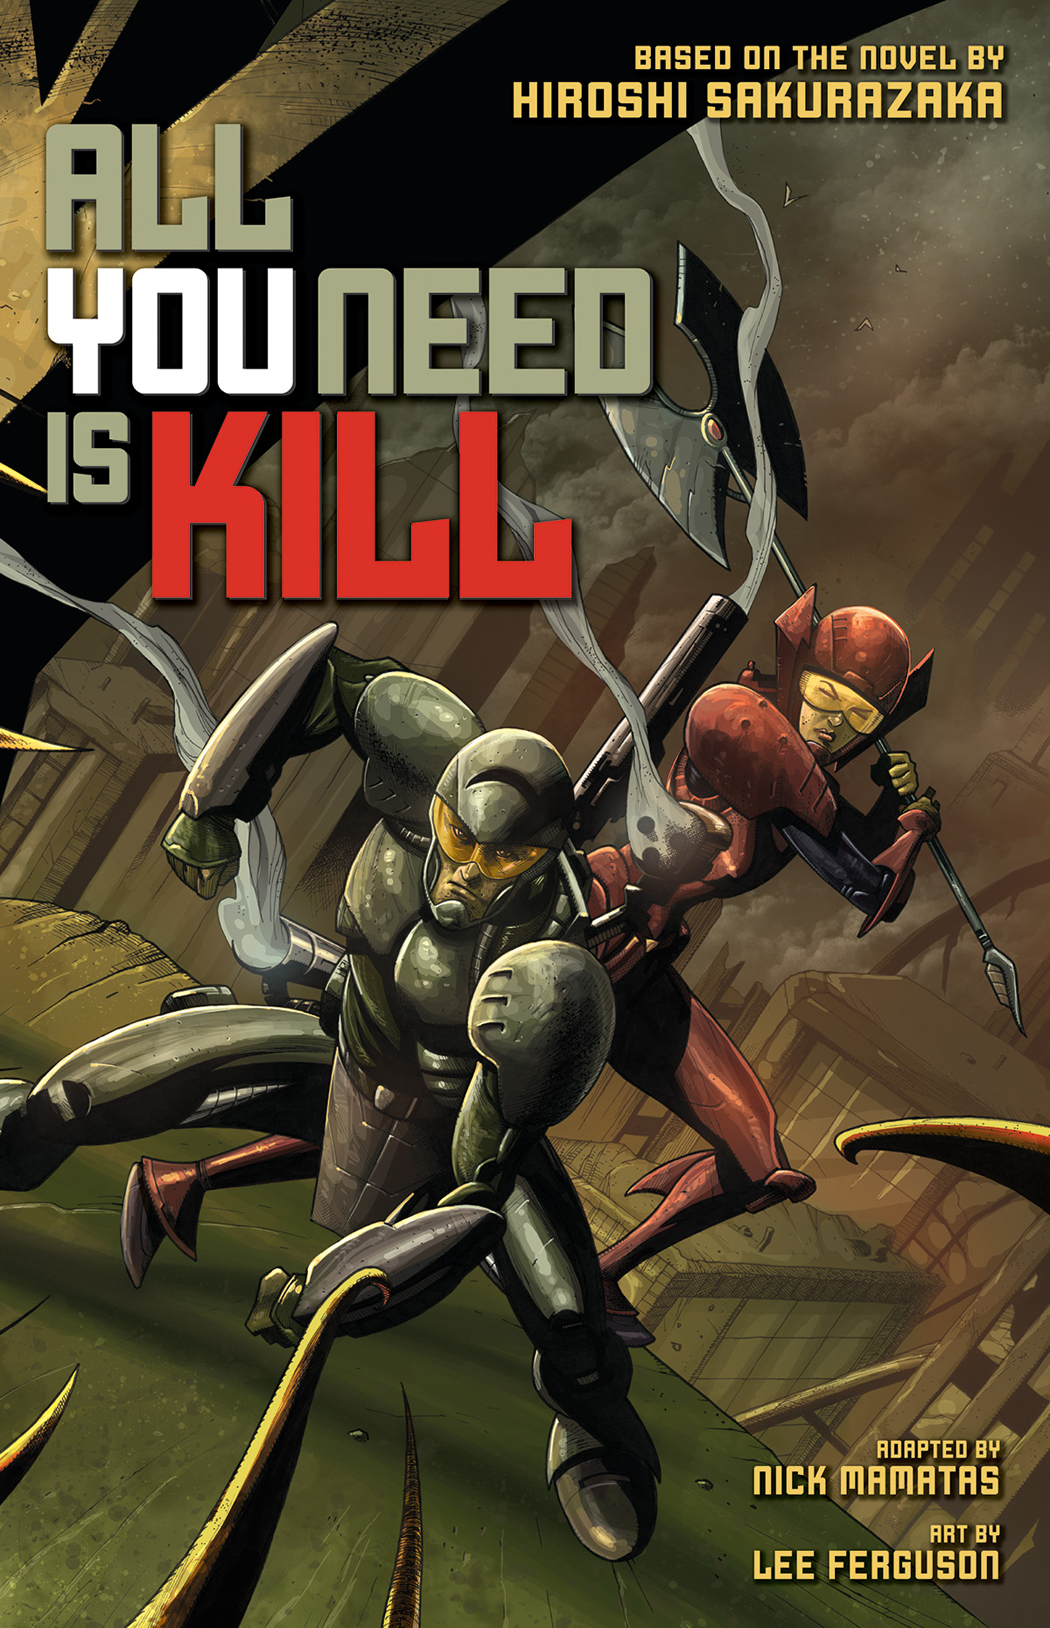 ALL YOU NEED IS KILL GN VOL 01